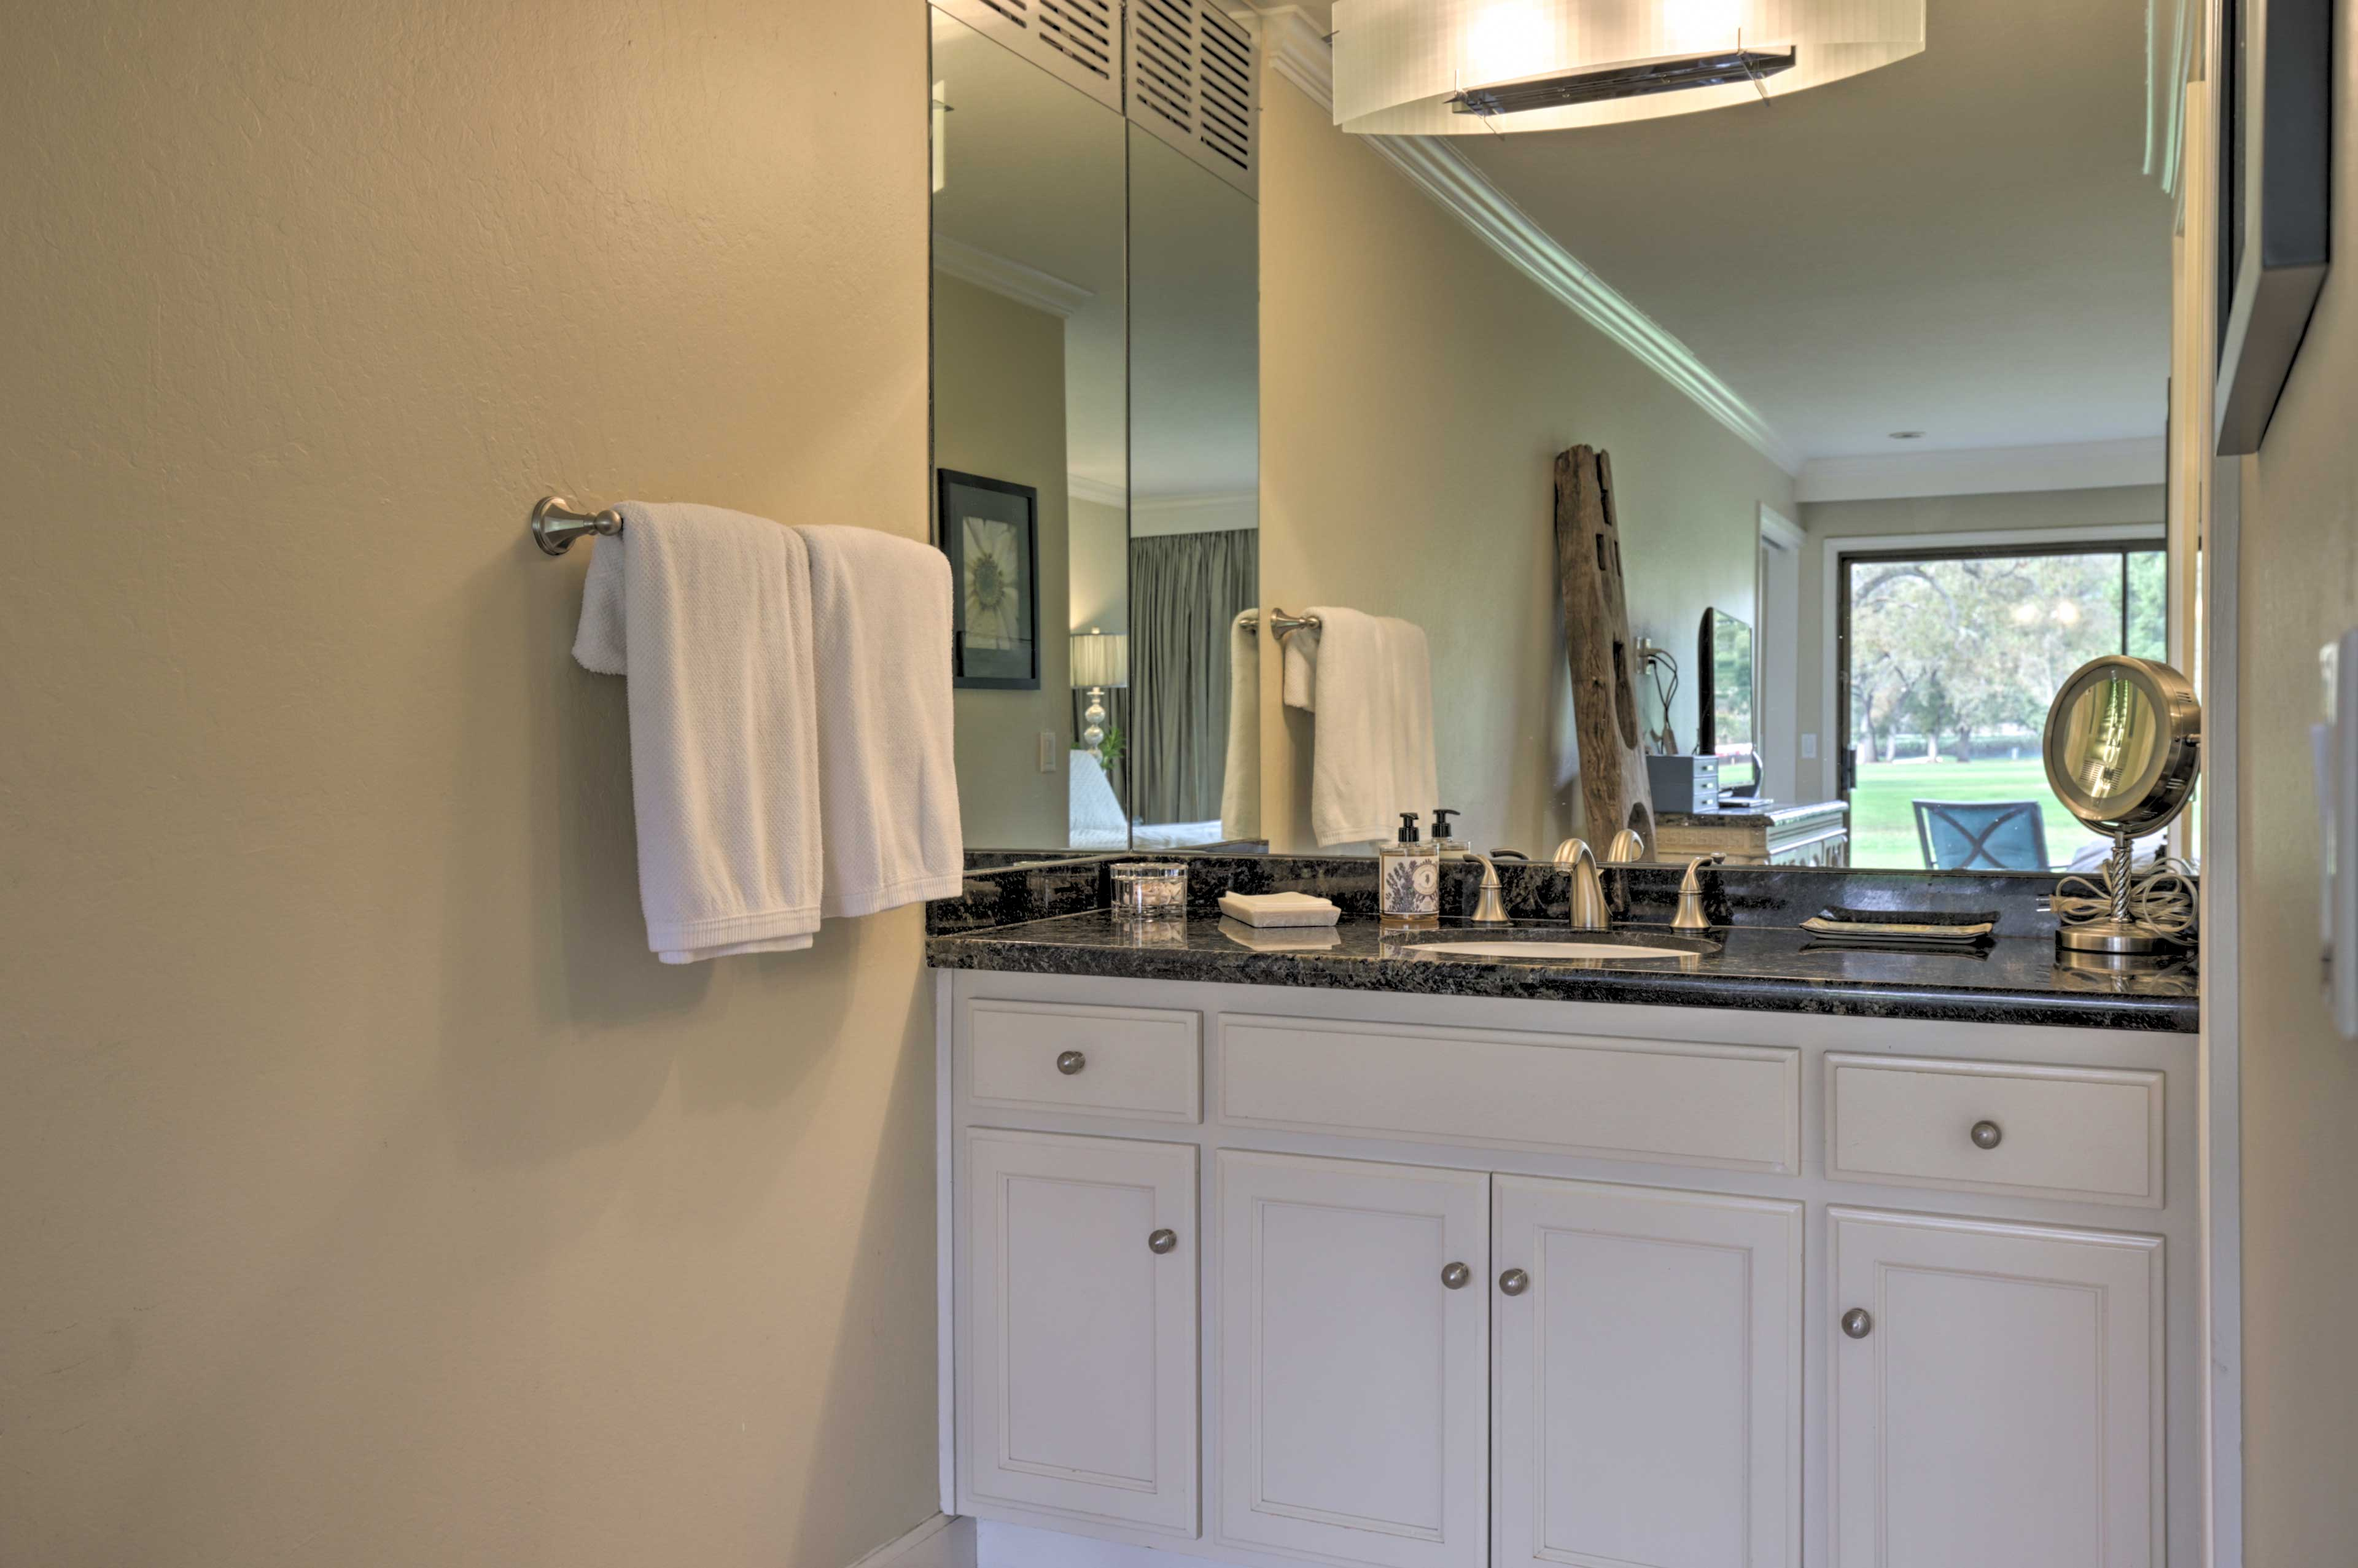 Get ready for the day in the pristine bathroom.